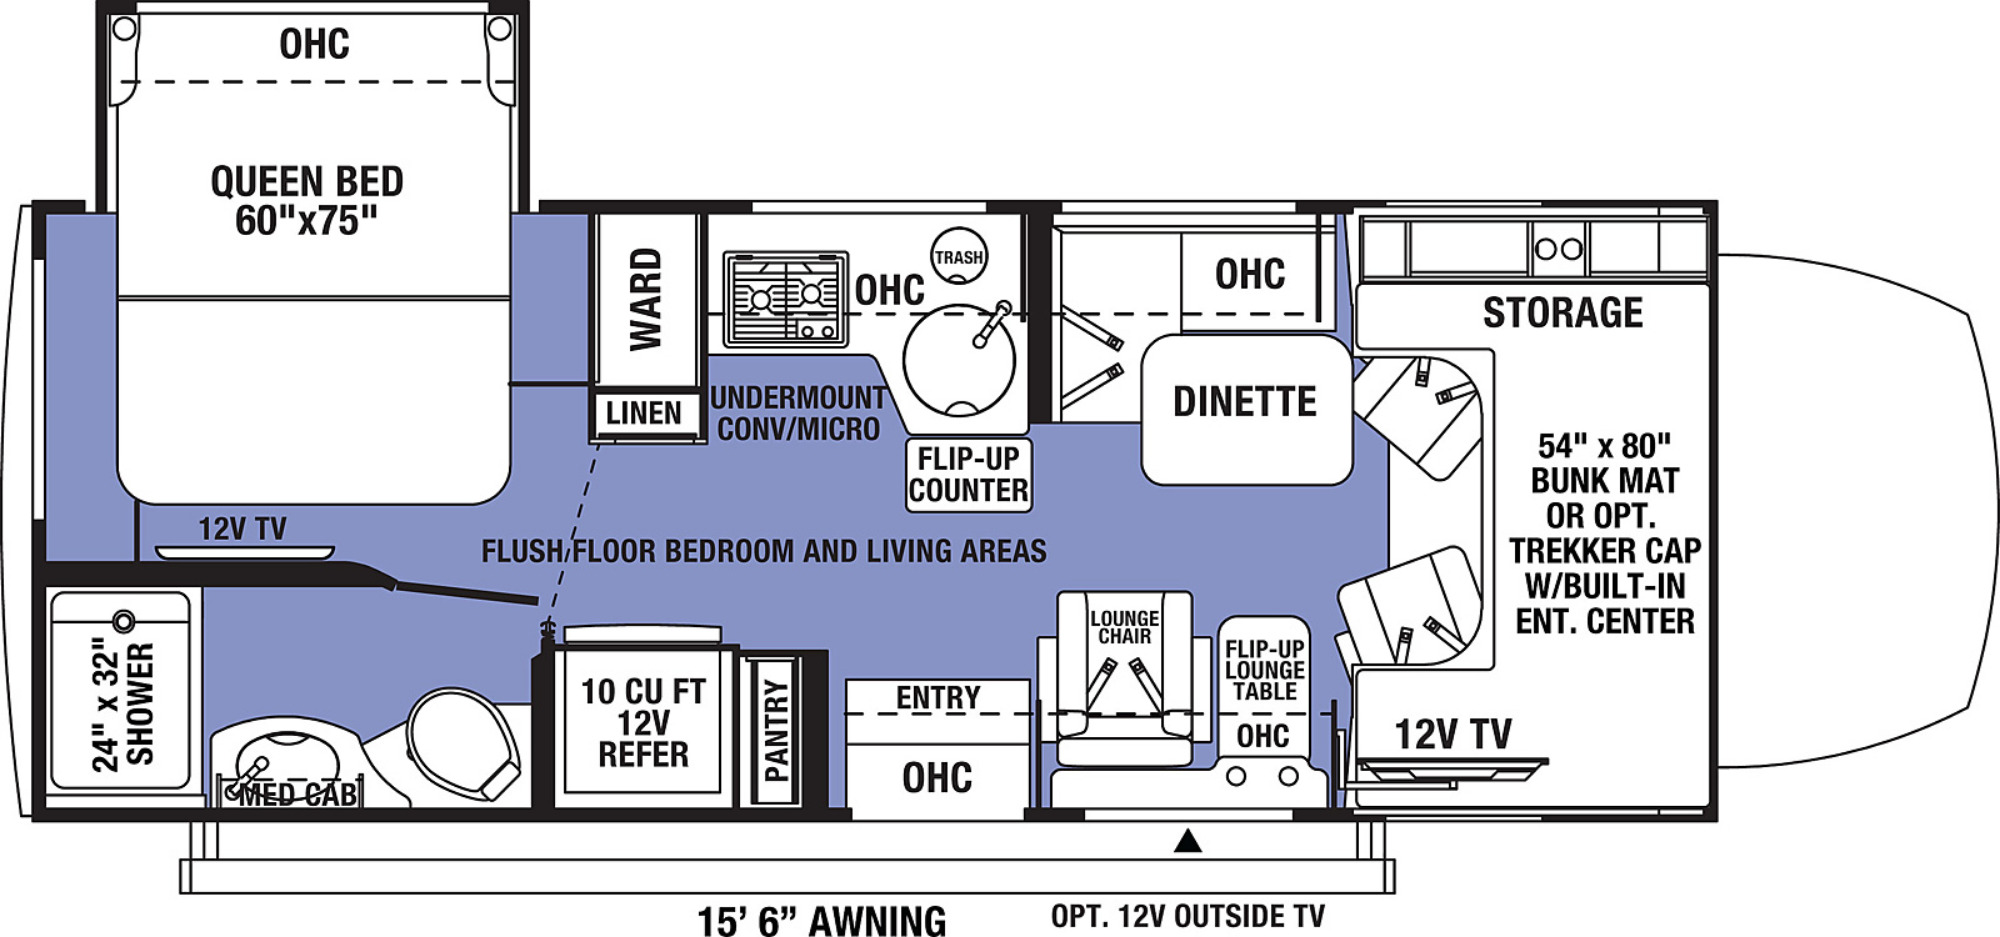 View Floor Plan for 2021 FOREST RIVER SUNSEEKER MBS 2400Q